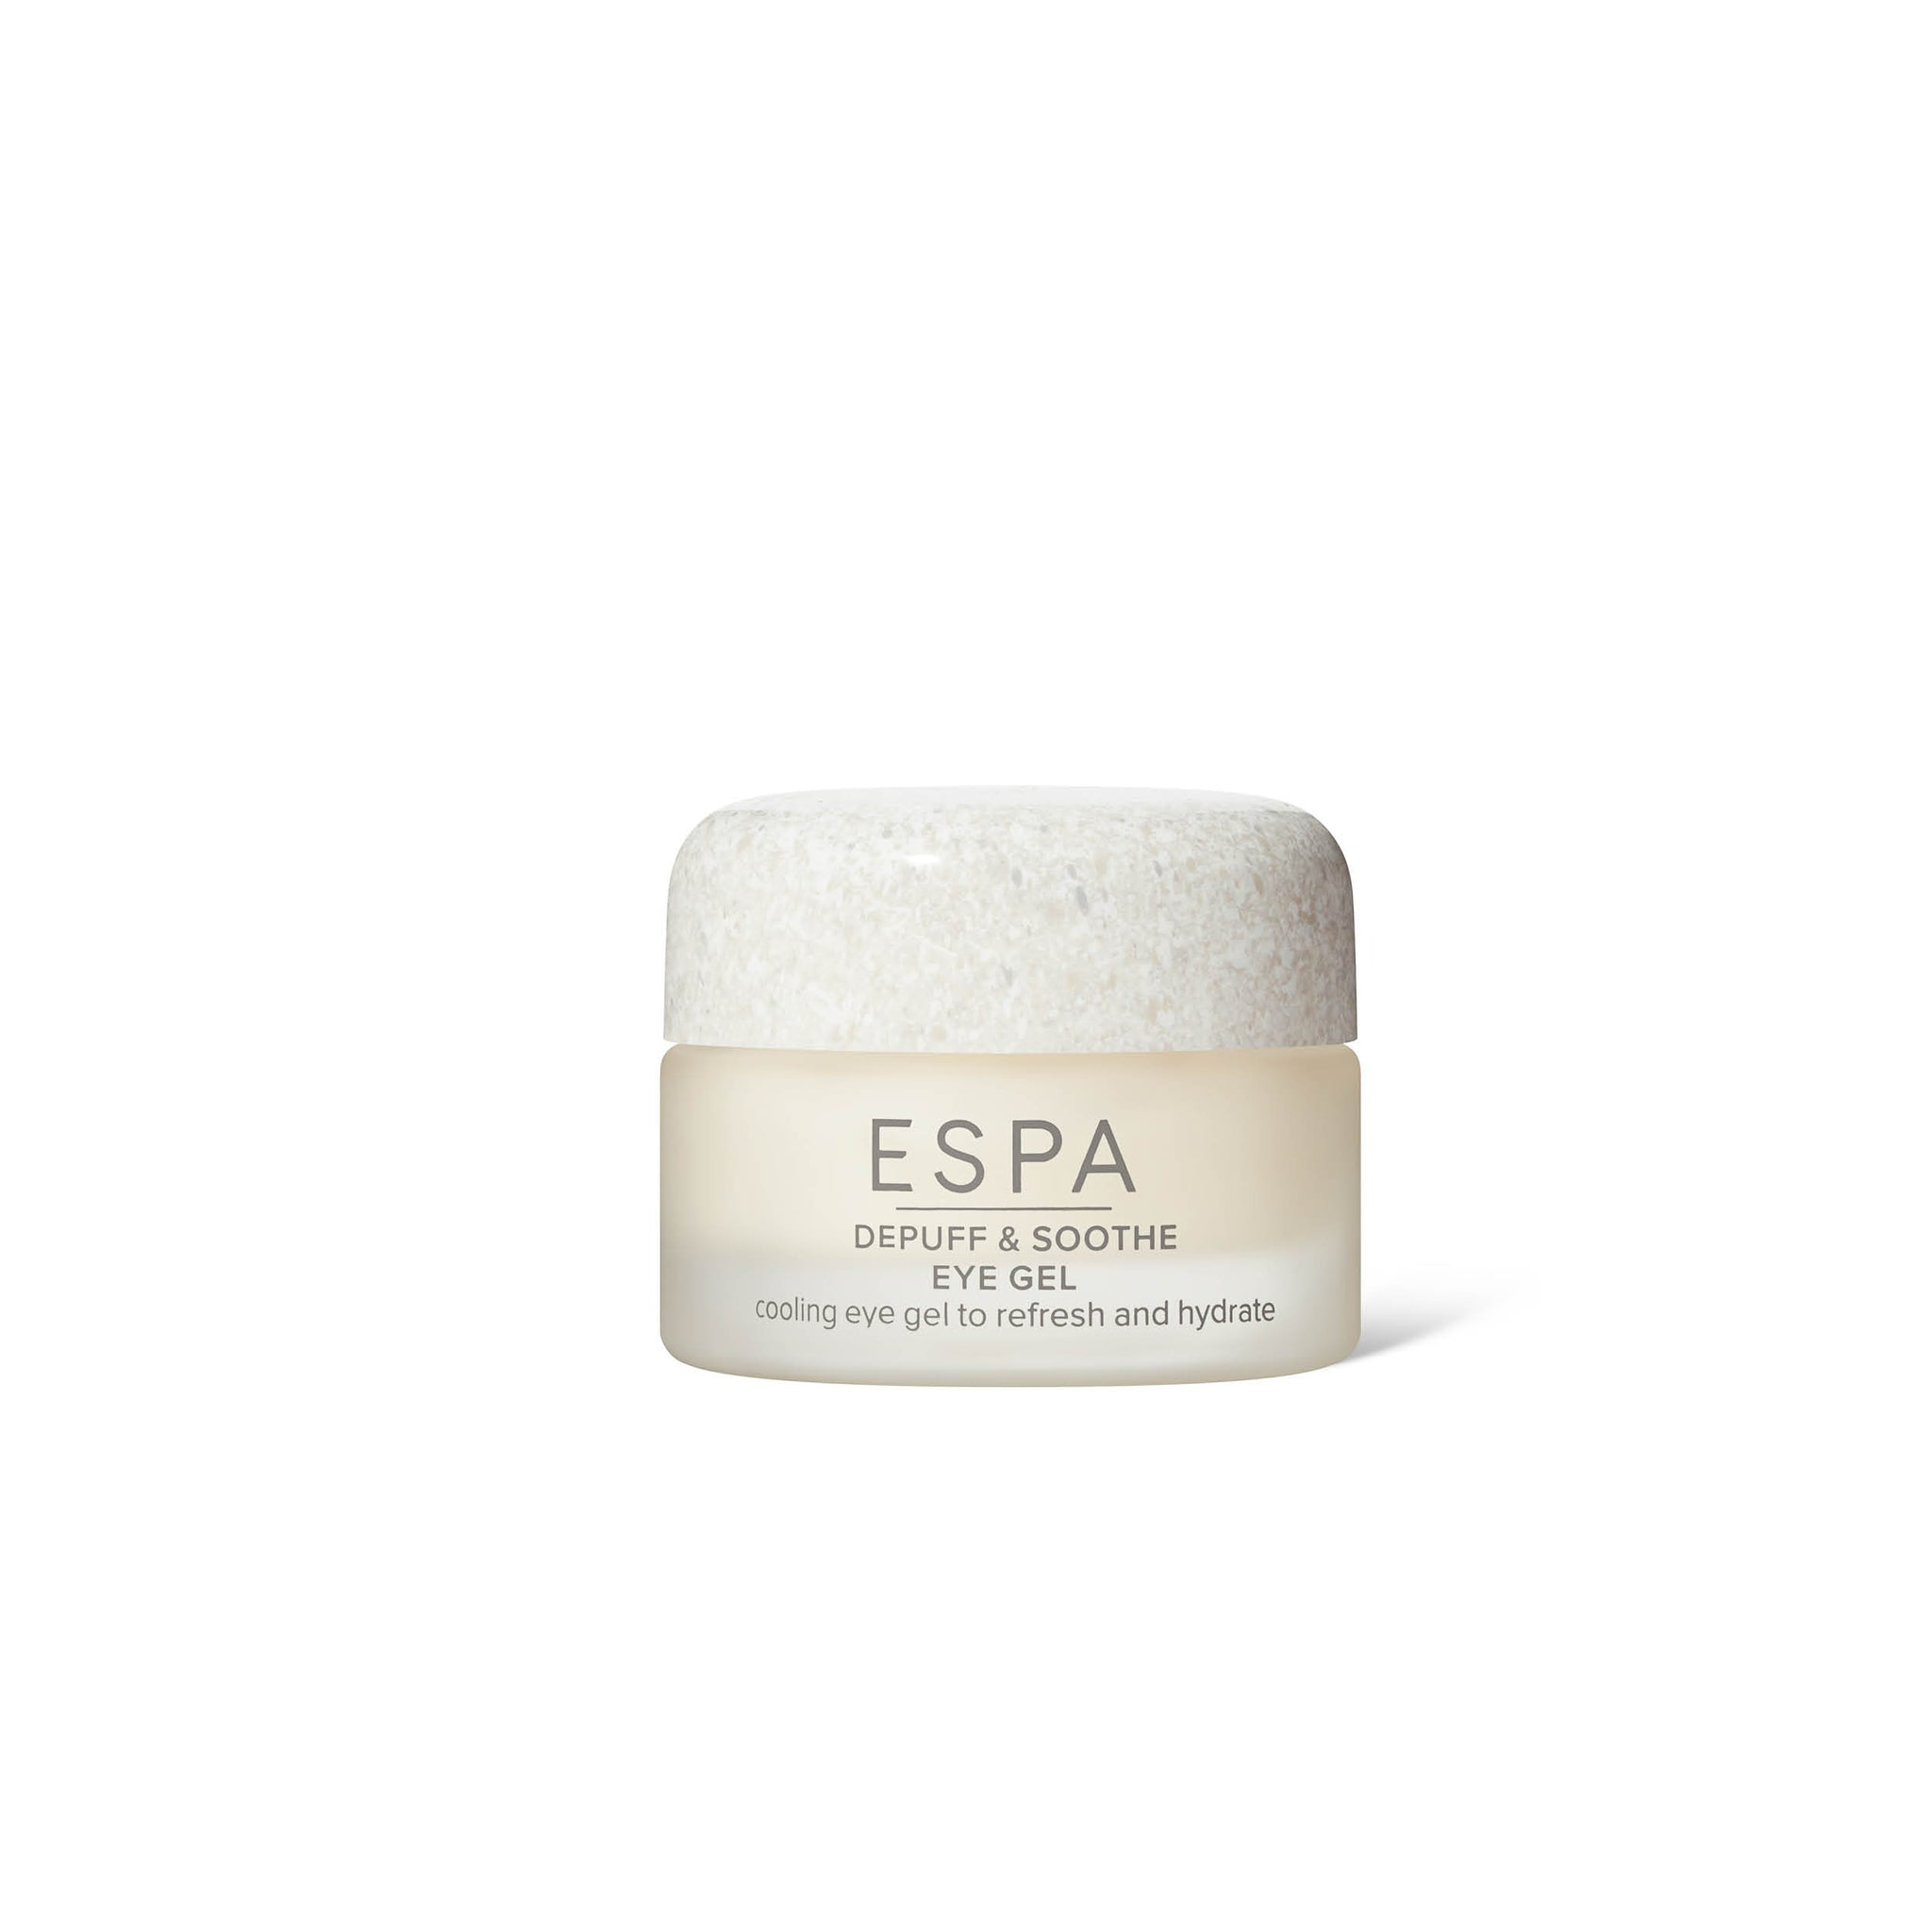 ESPA Depuff & Soothe Eye Gel